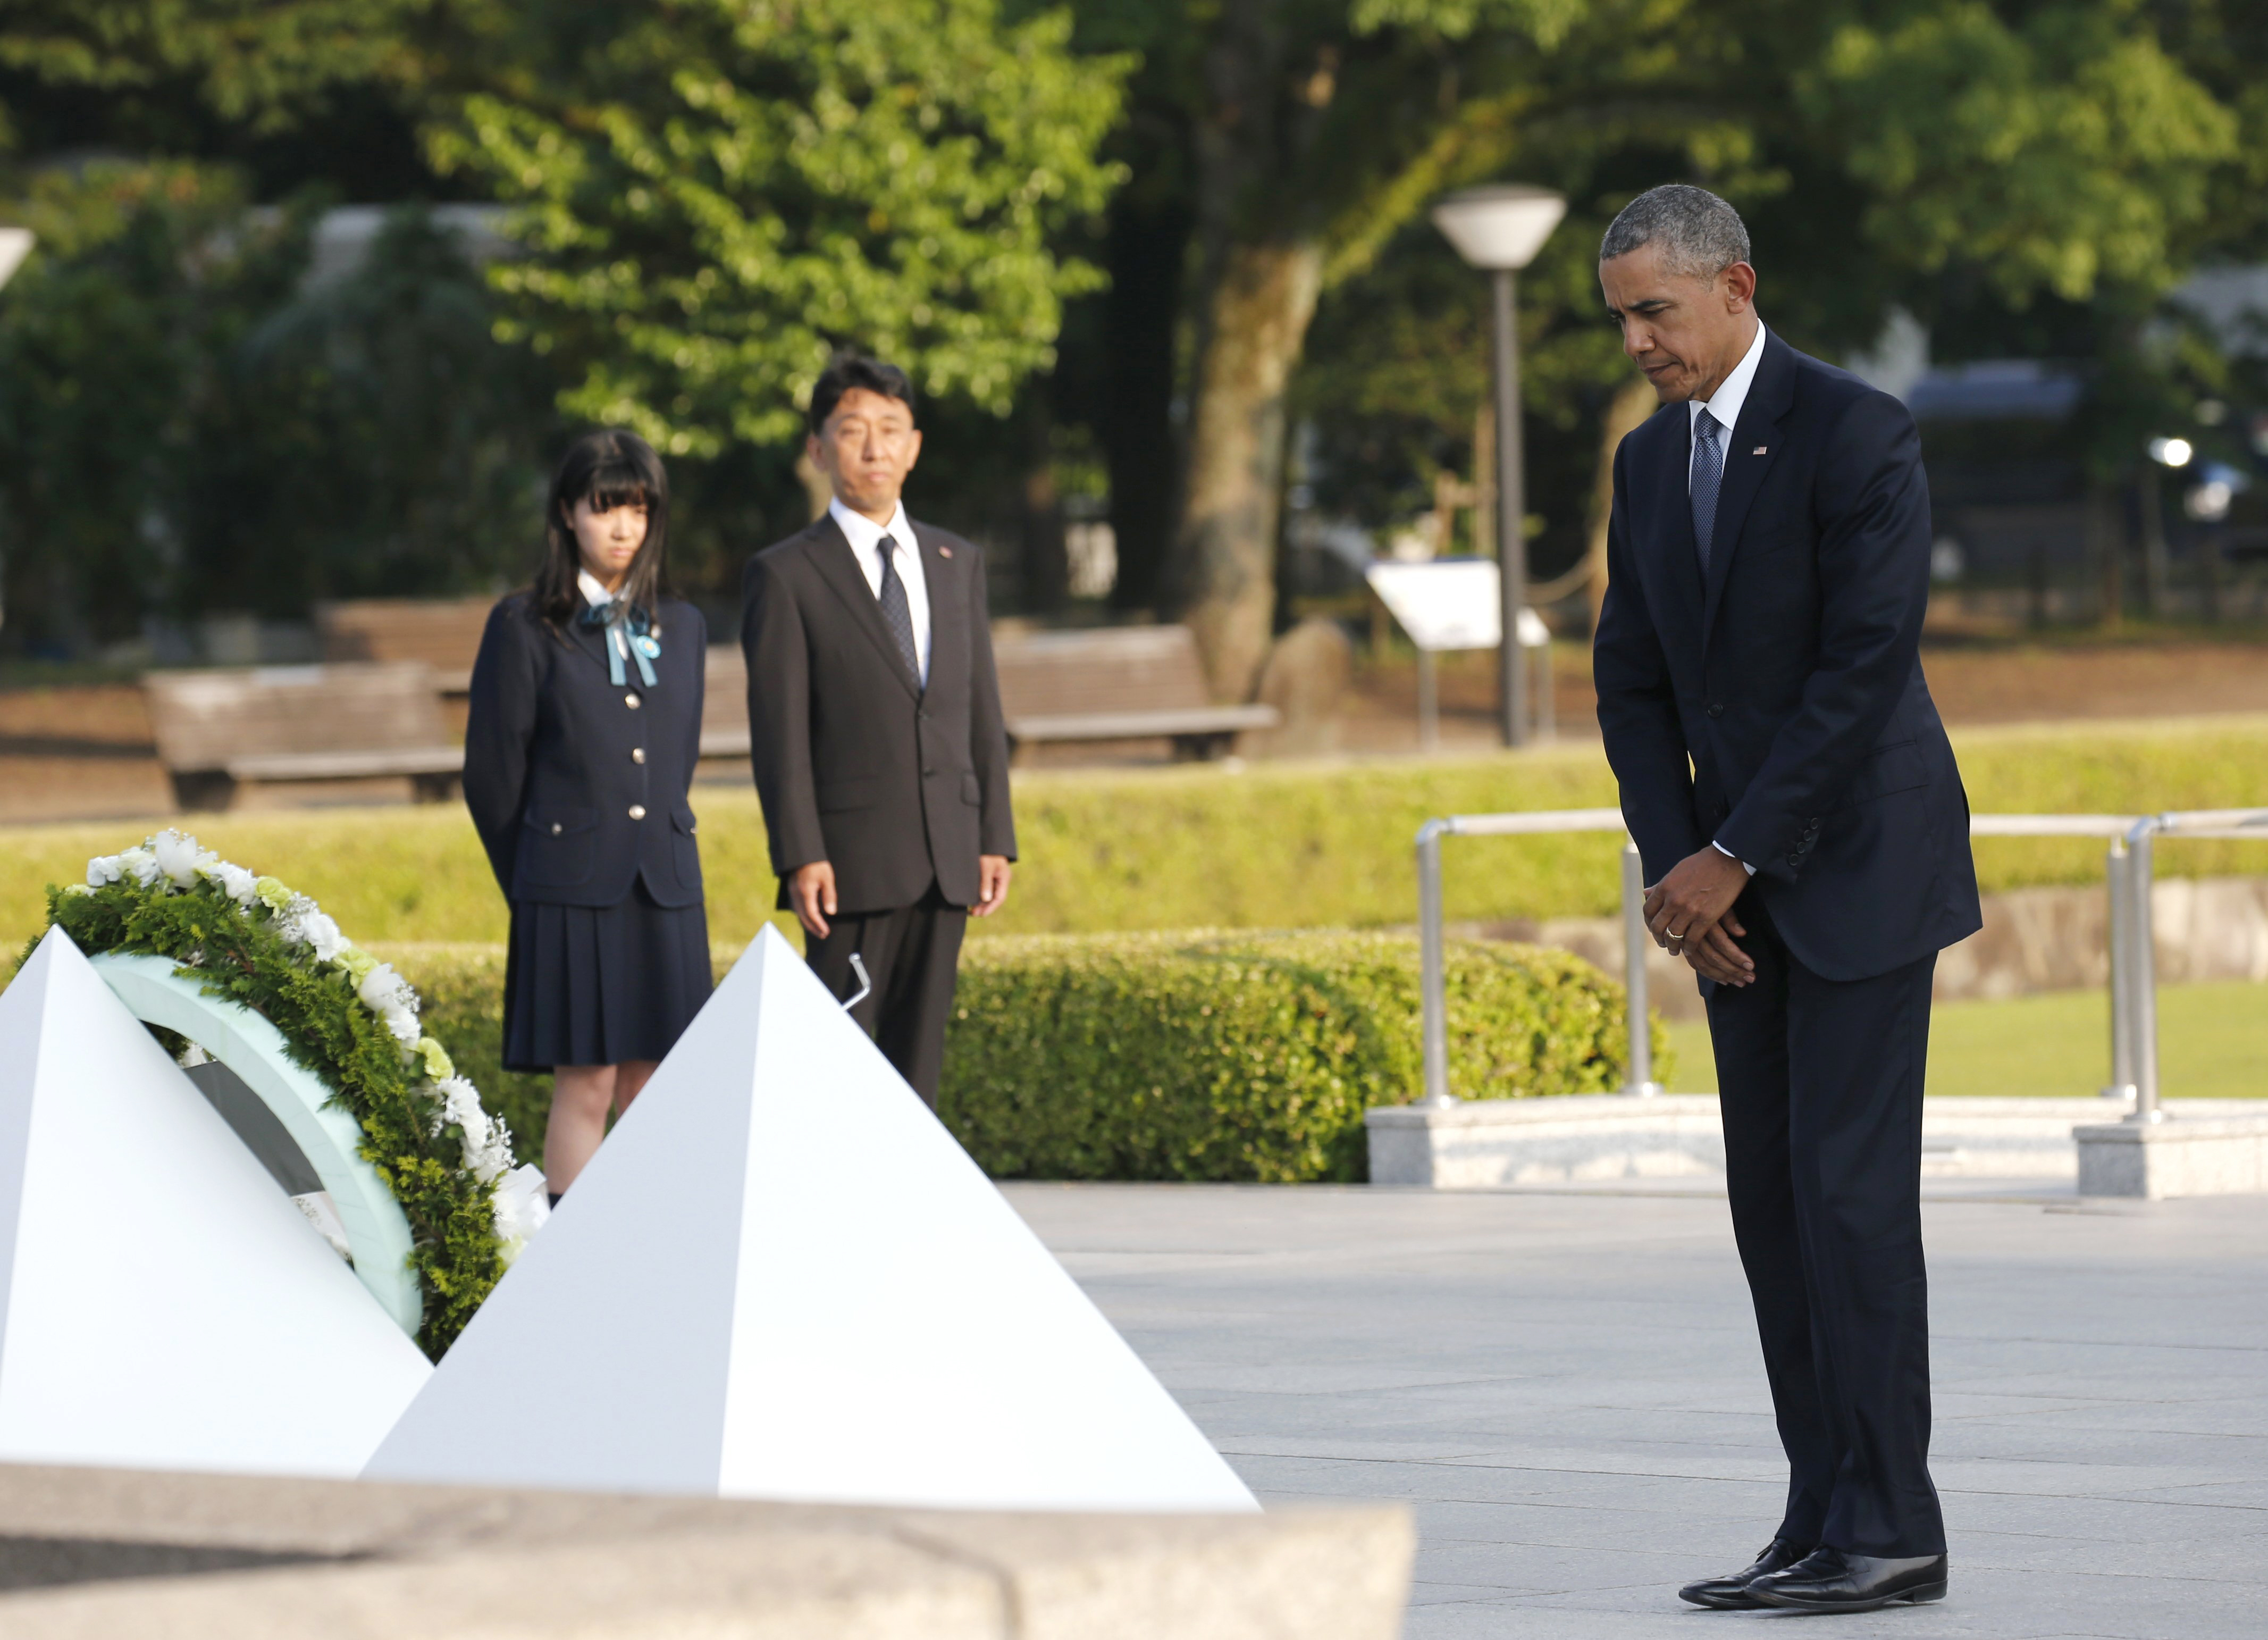 U.S. President Barack Obama stands after laying a wreath at the Hiroshima Peace Memorial Park in Hiroshima, western, Japan, Friday, May 27, 2016. Obama on Friday became the first sitting U.S. president to visit the site of the world's first atomic bomb attack.